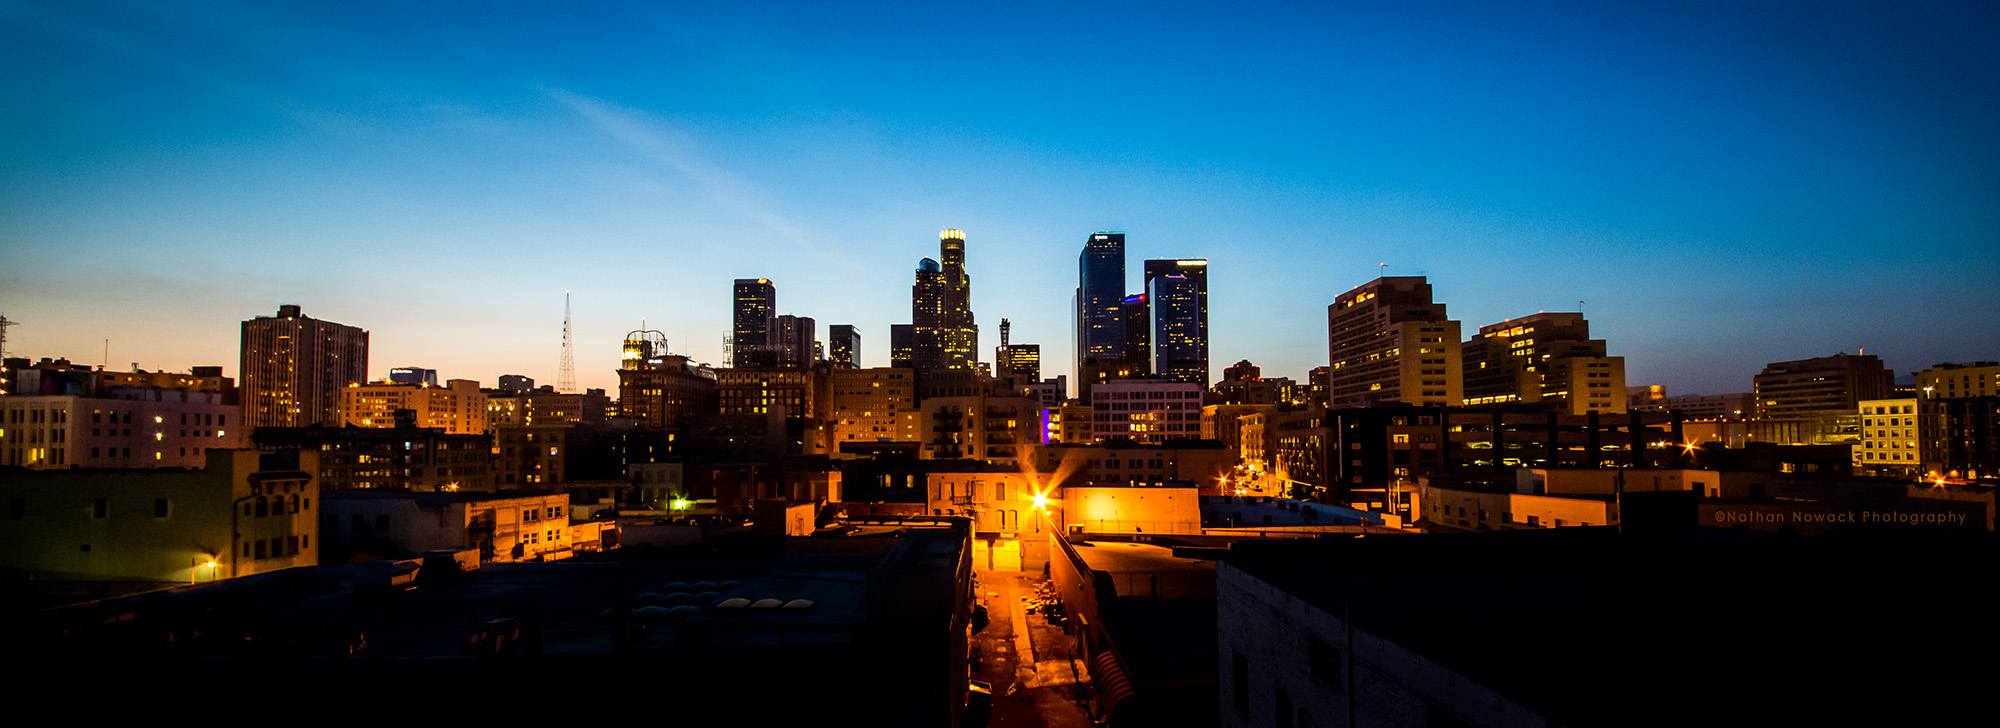 301 moved permanently - Panoramic les angles ...